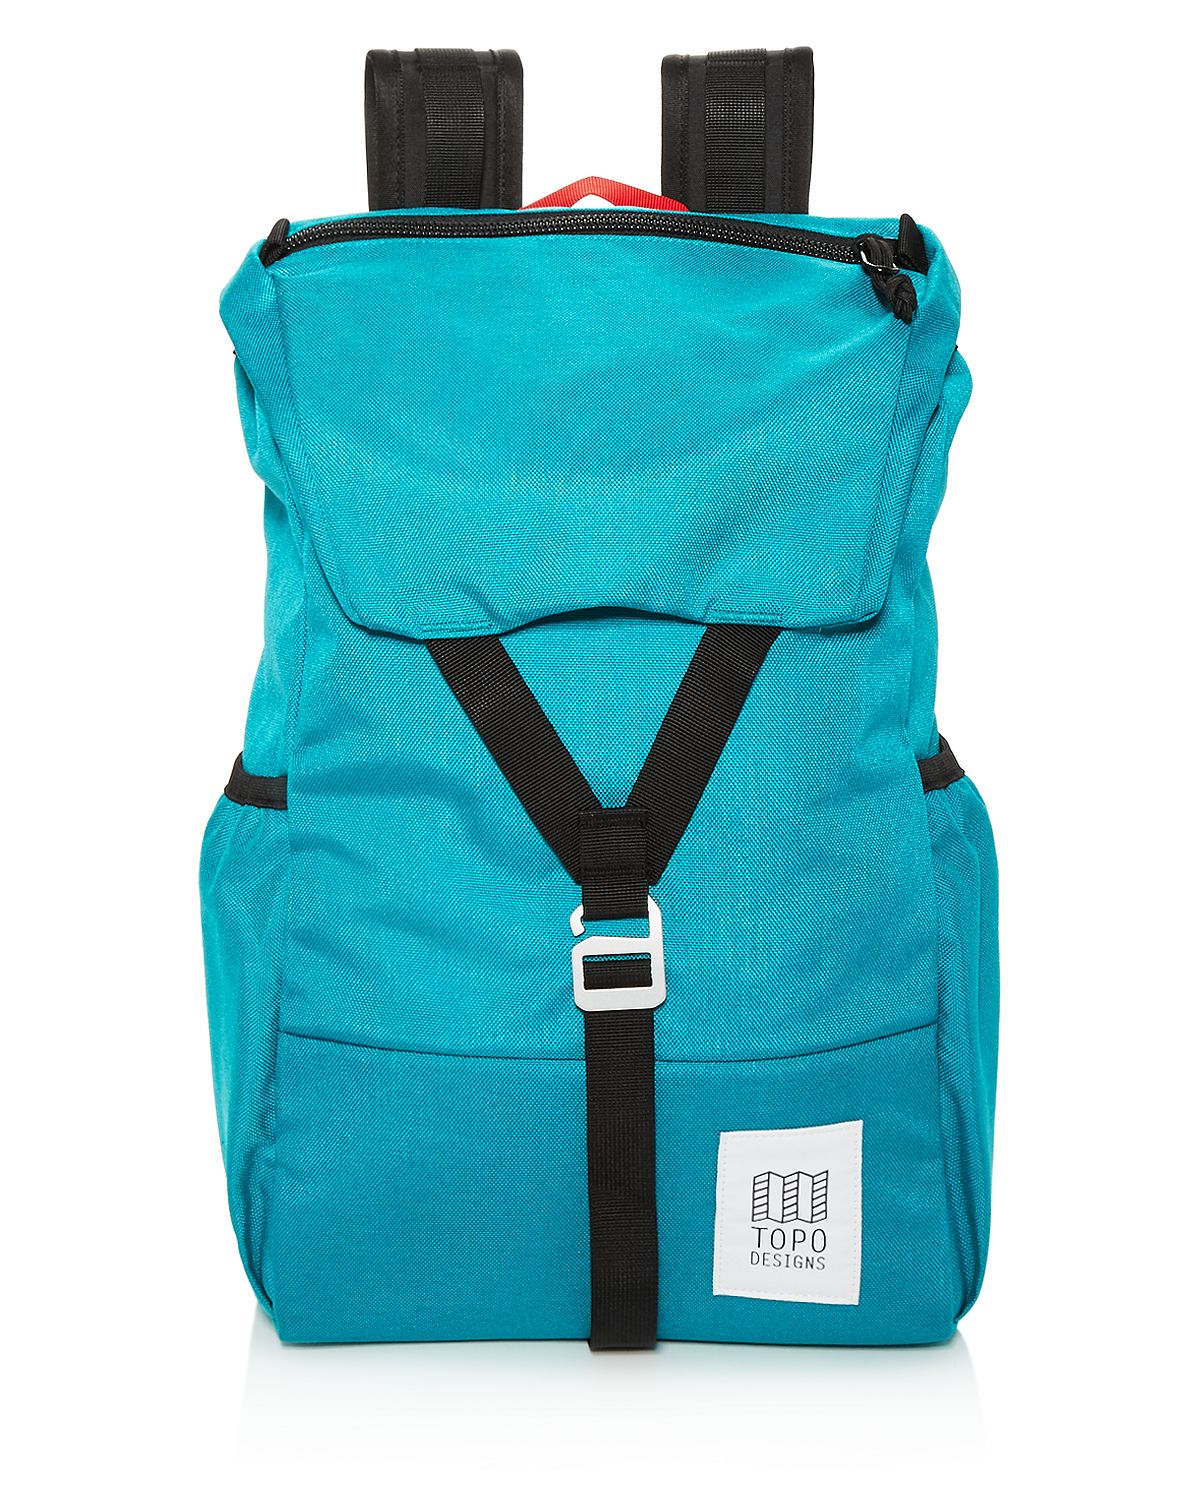 Topo Designs Topo Y Pack Backpack Turquoise